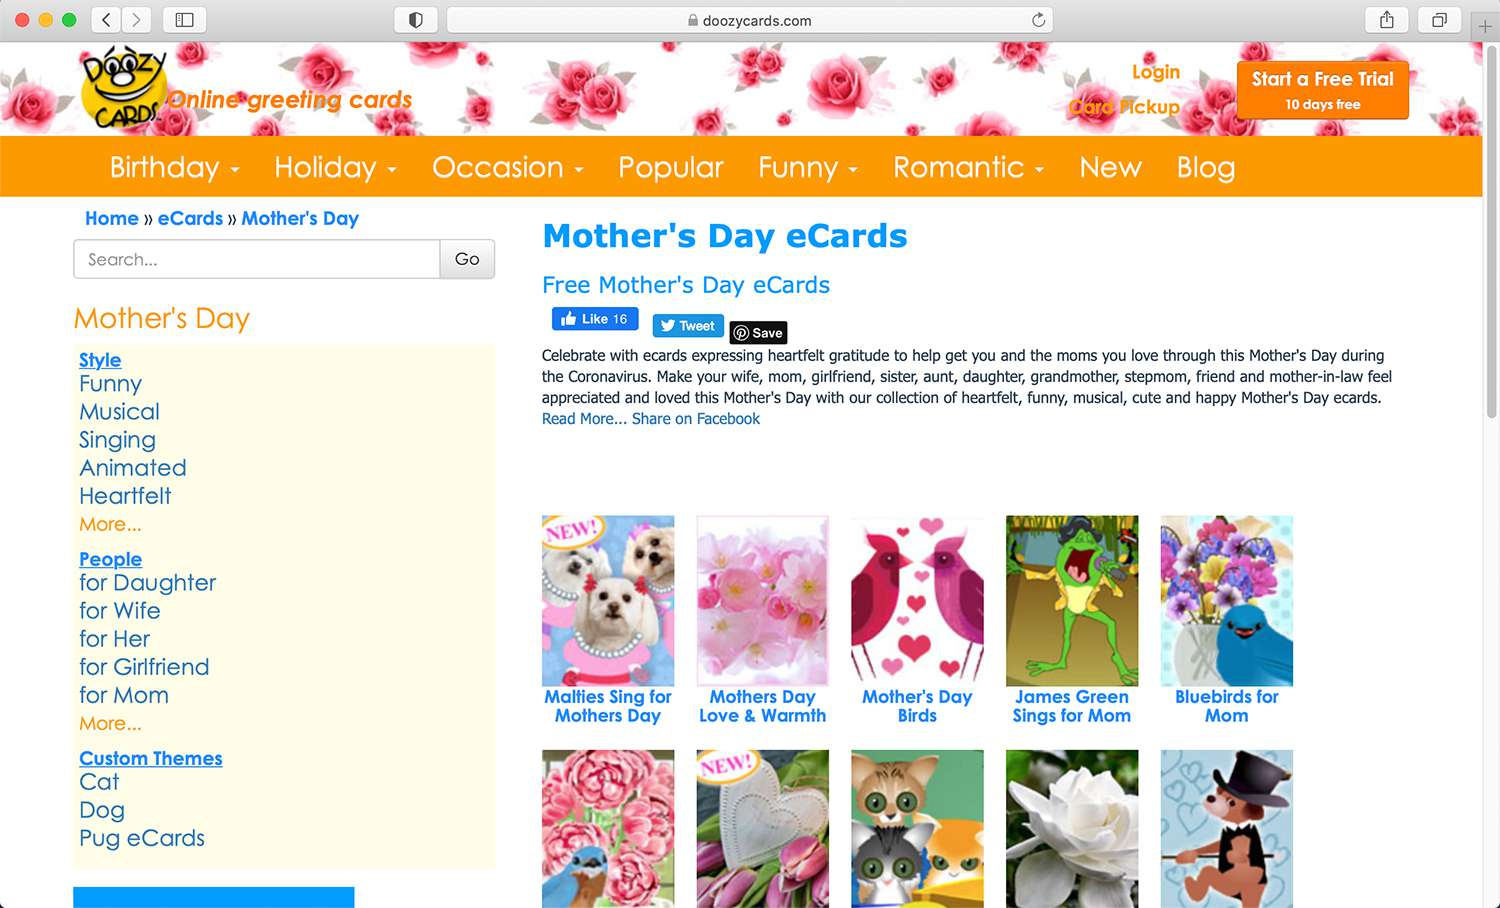 Doozy Cards e-card website for Mother's Day and other holidays